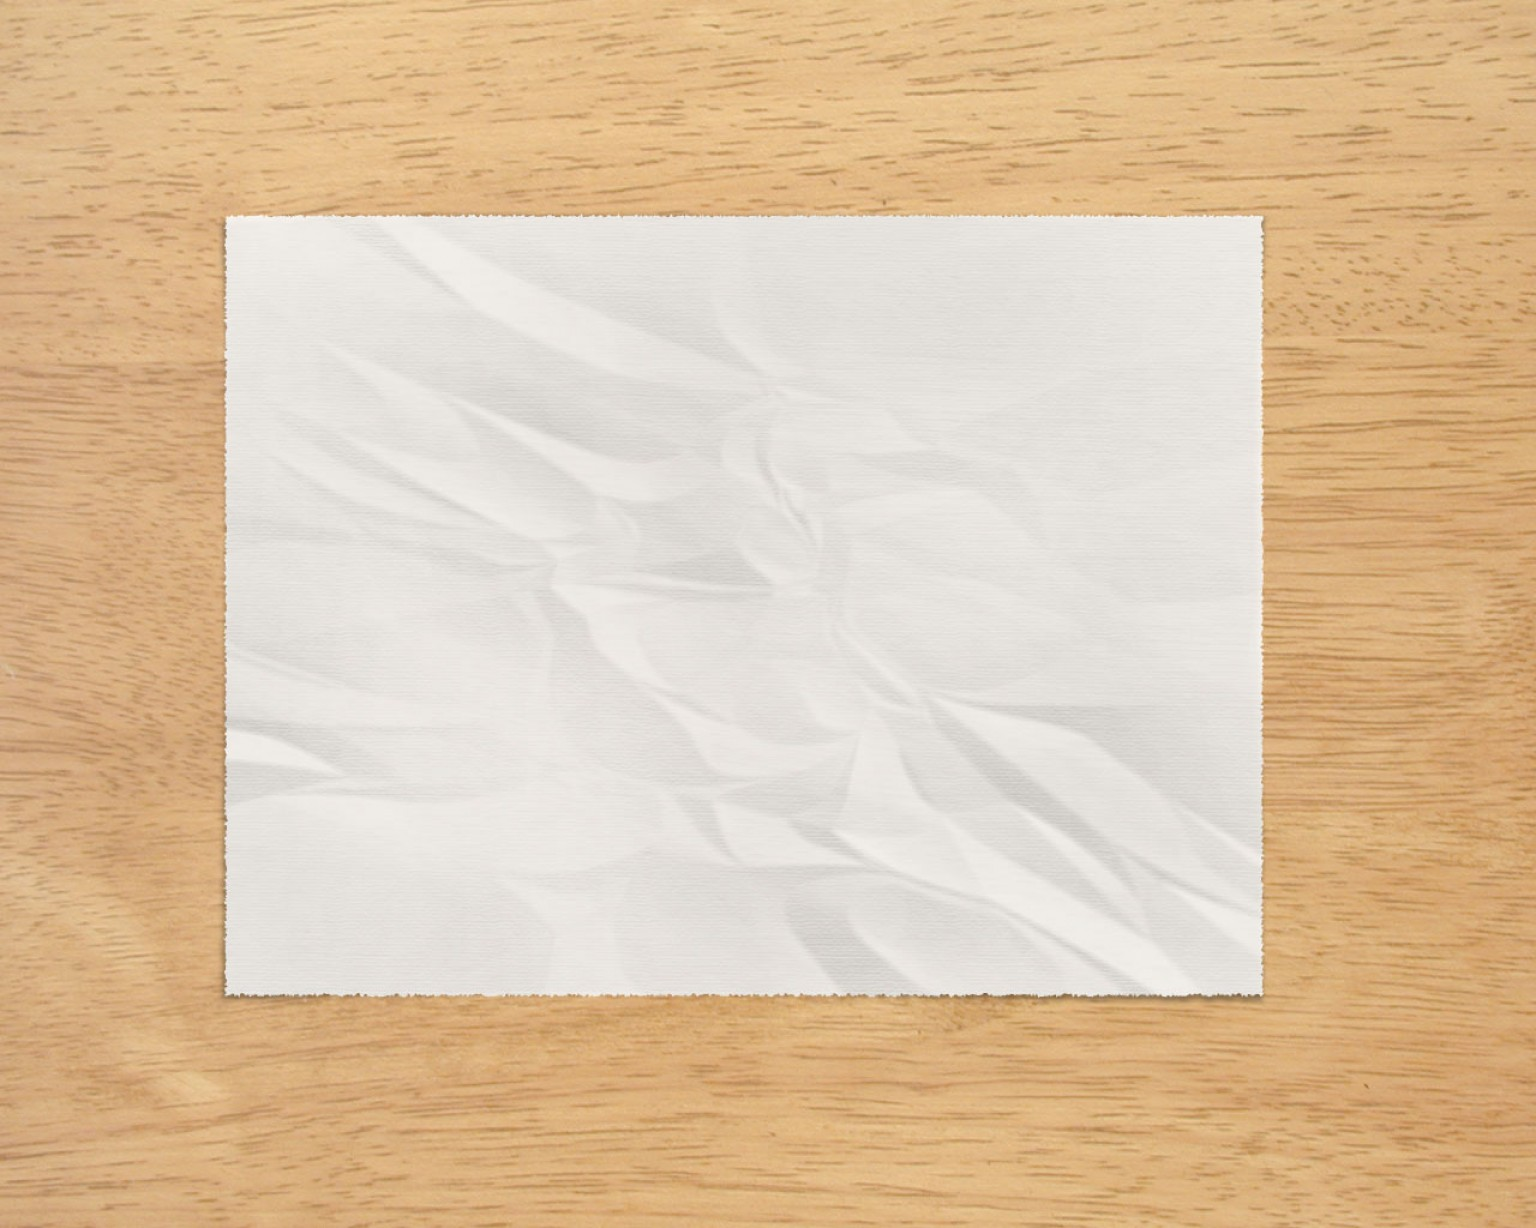 Crinkled Paper Vector: Quick Tip Create A Realistic Paper Texture In Minutes Psd